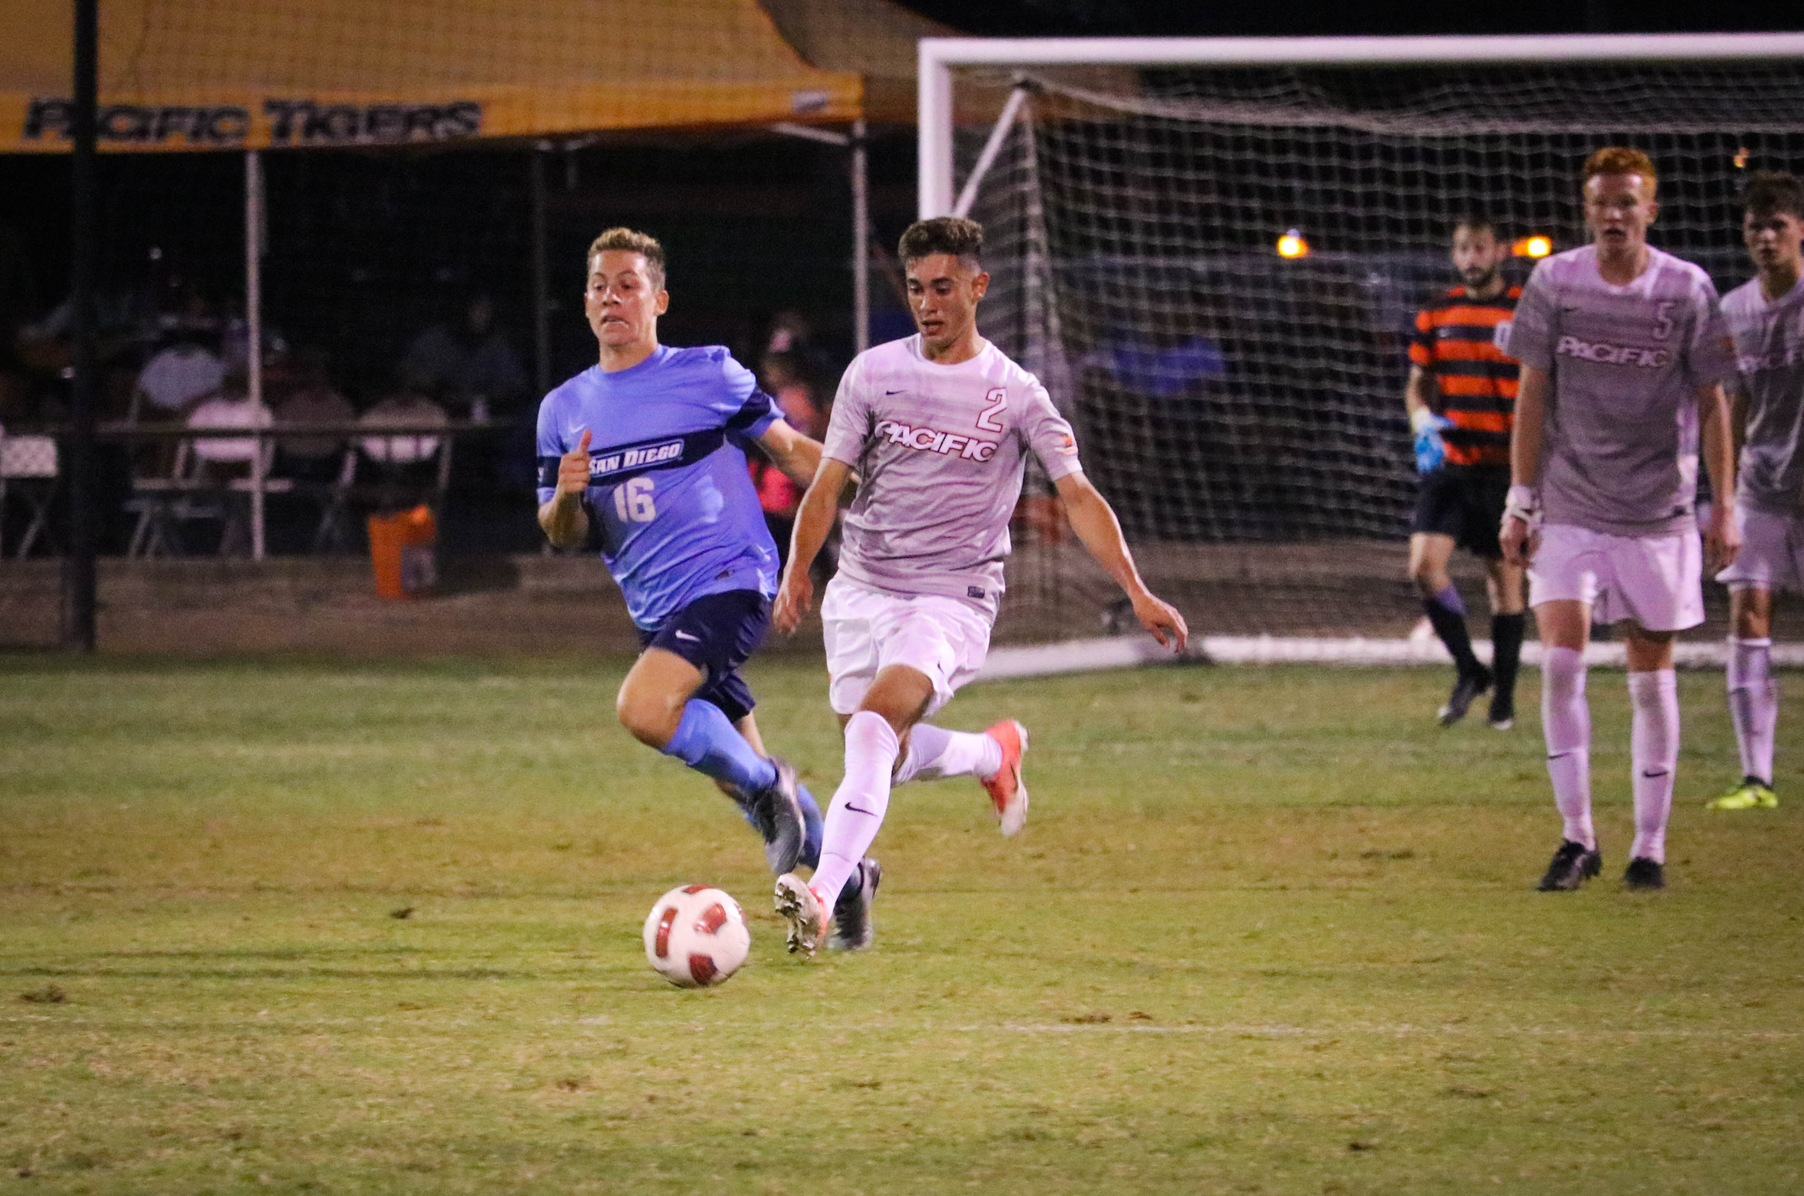 Tigers Blanked by Dons, 3-0